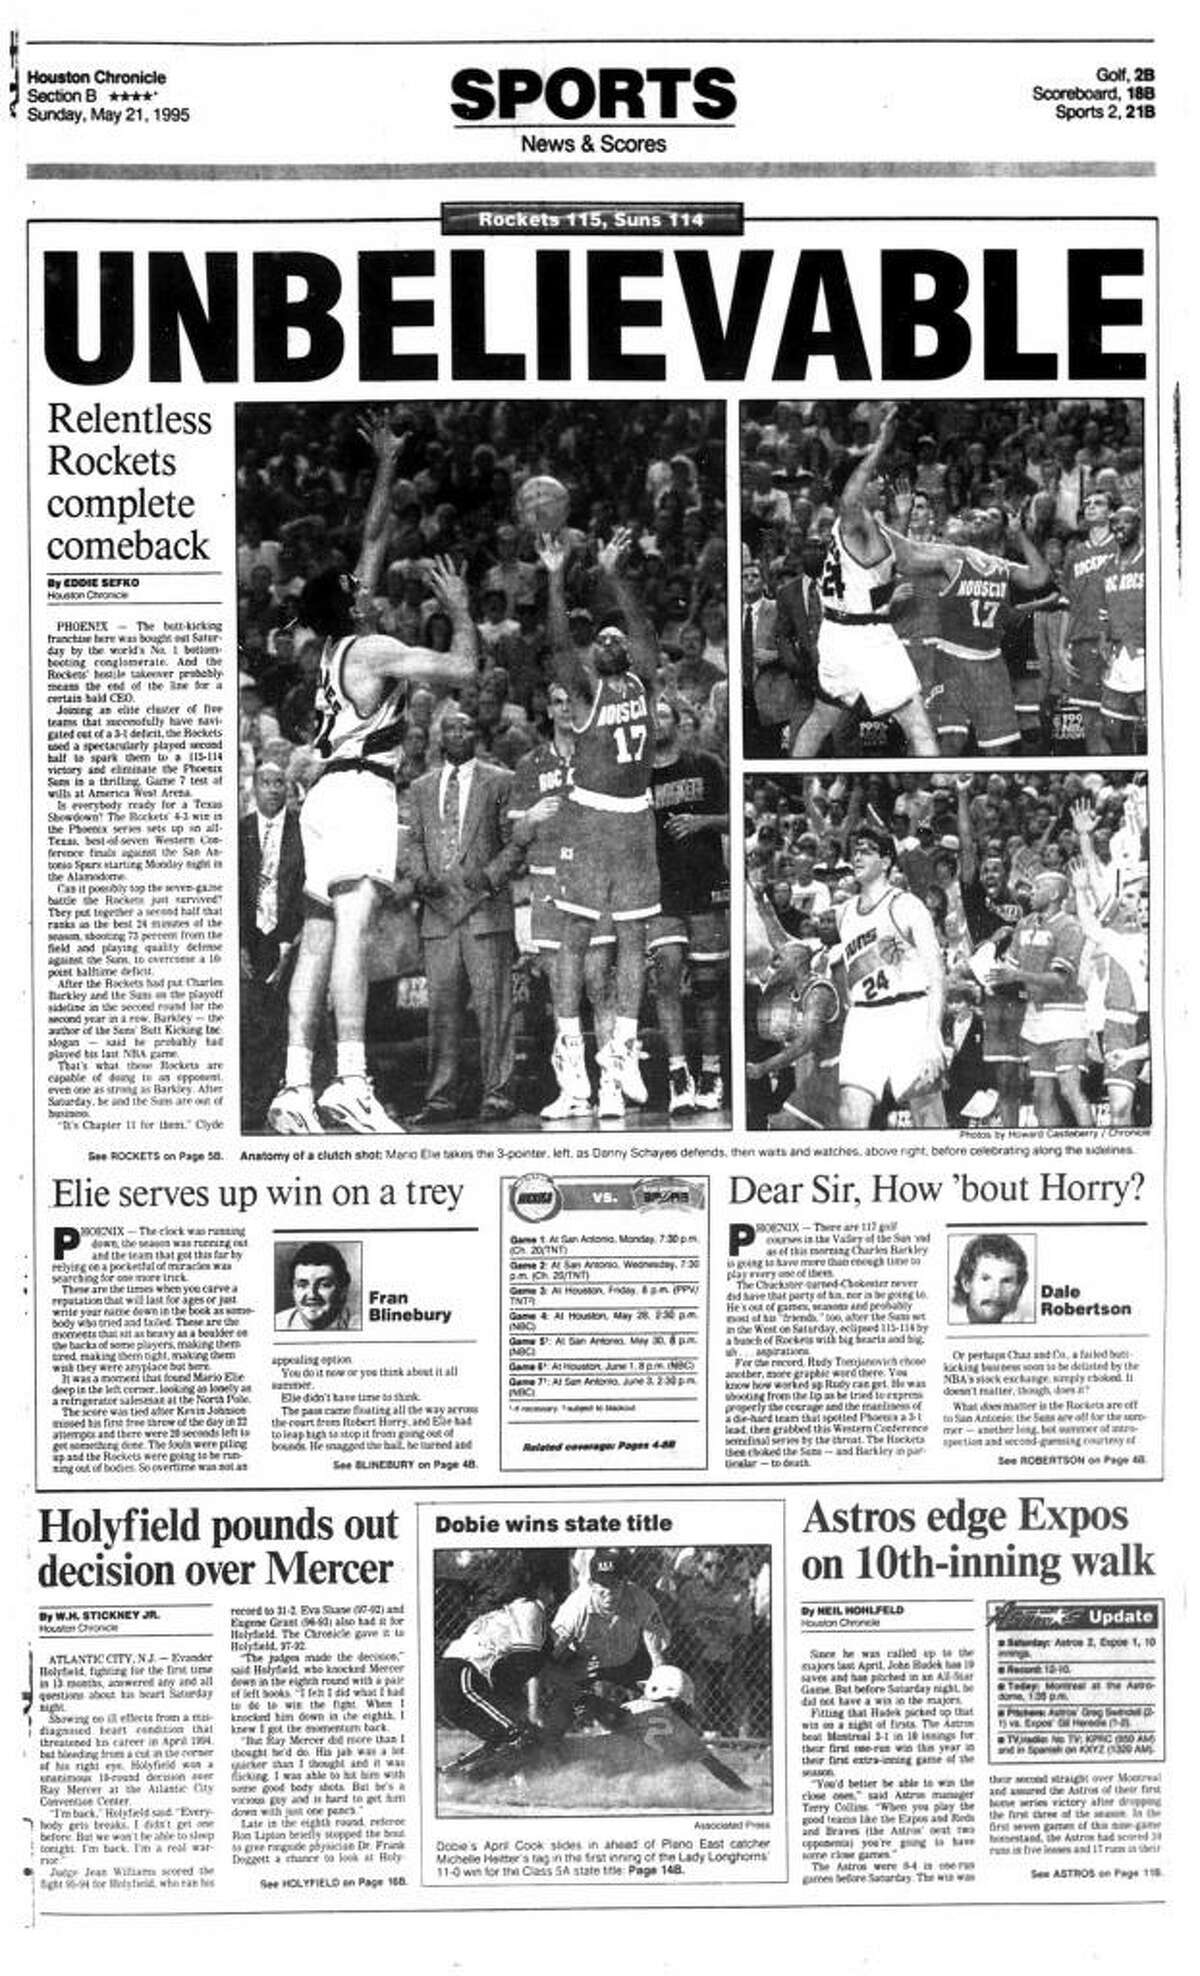 The next day's Houston Chronicle sports section front page following the Rockets' Game 7 victory at Phoenix in the 1995 Western Conference semifinals.